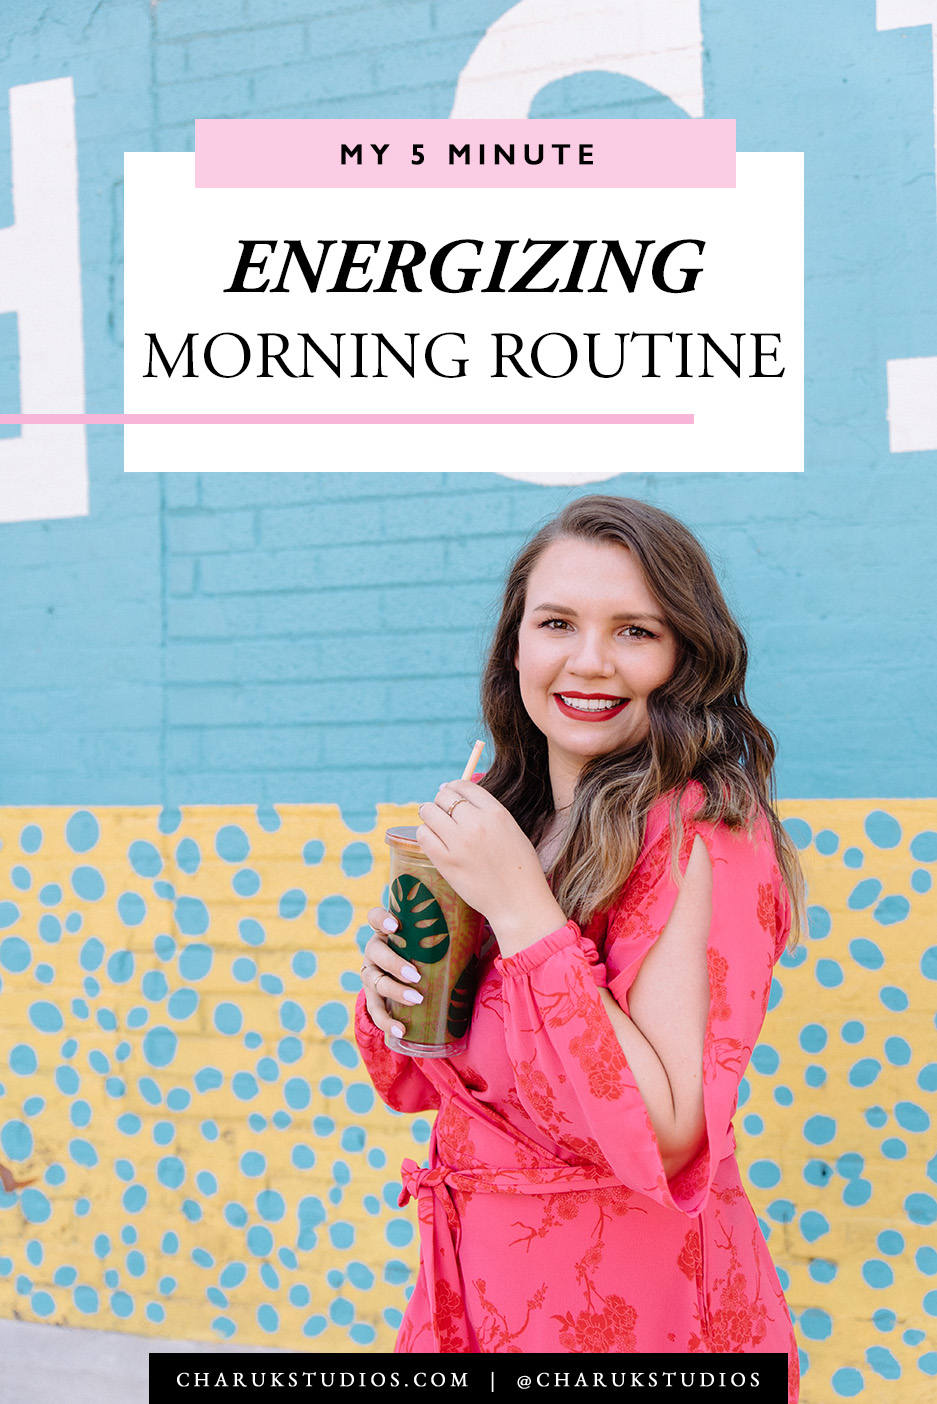 My 5 Minute Energizing Morning Routine by Charuk Studios